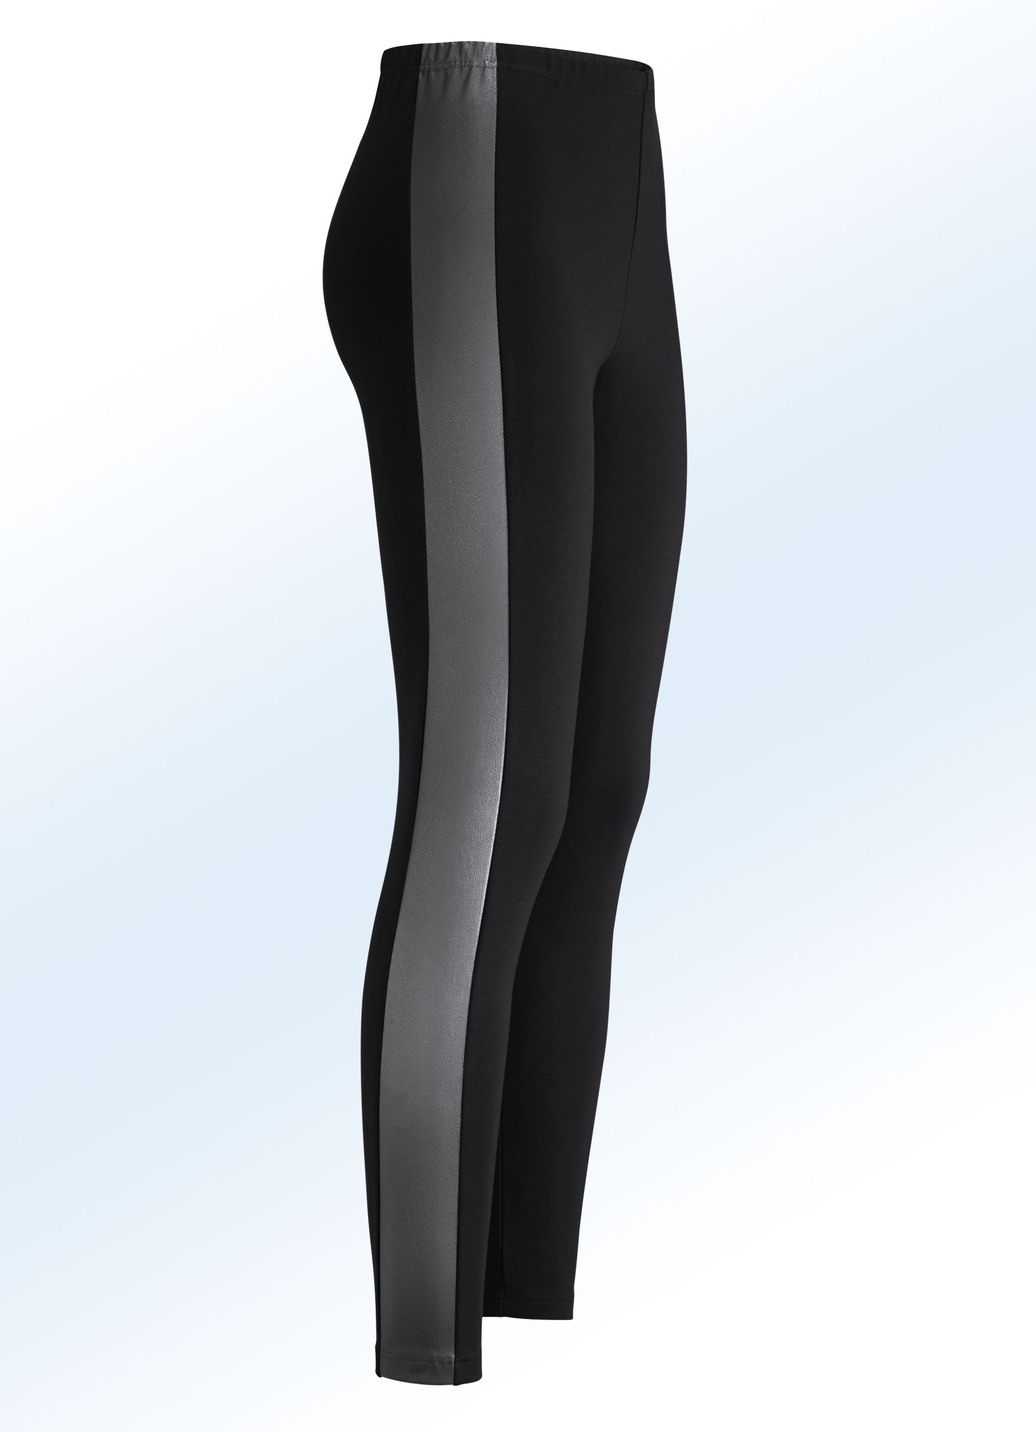 Leggings im Materialmix Schwarz Größe 80 Damen von KLAUS MODELLE MADE IN GERMANY